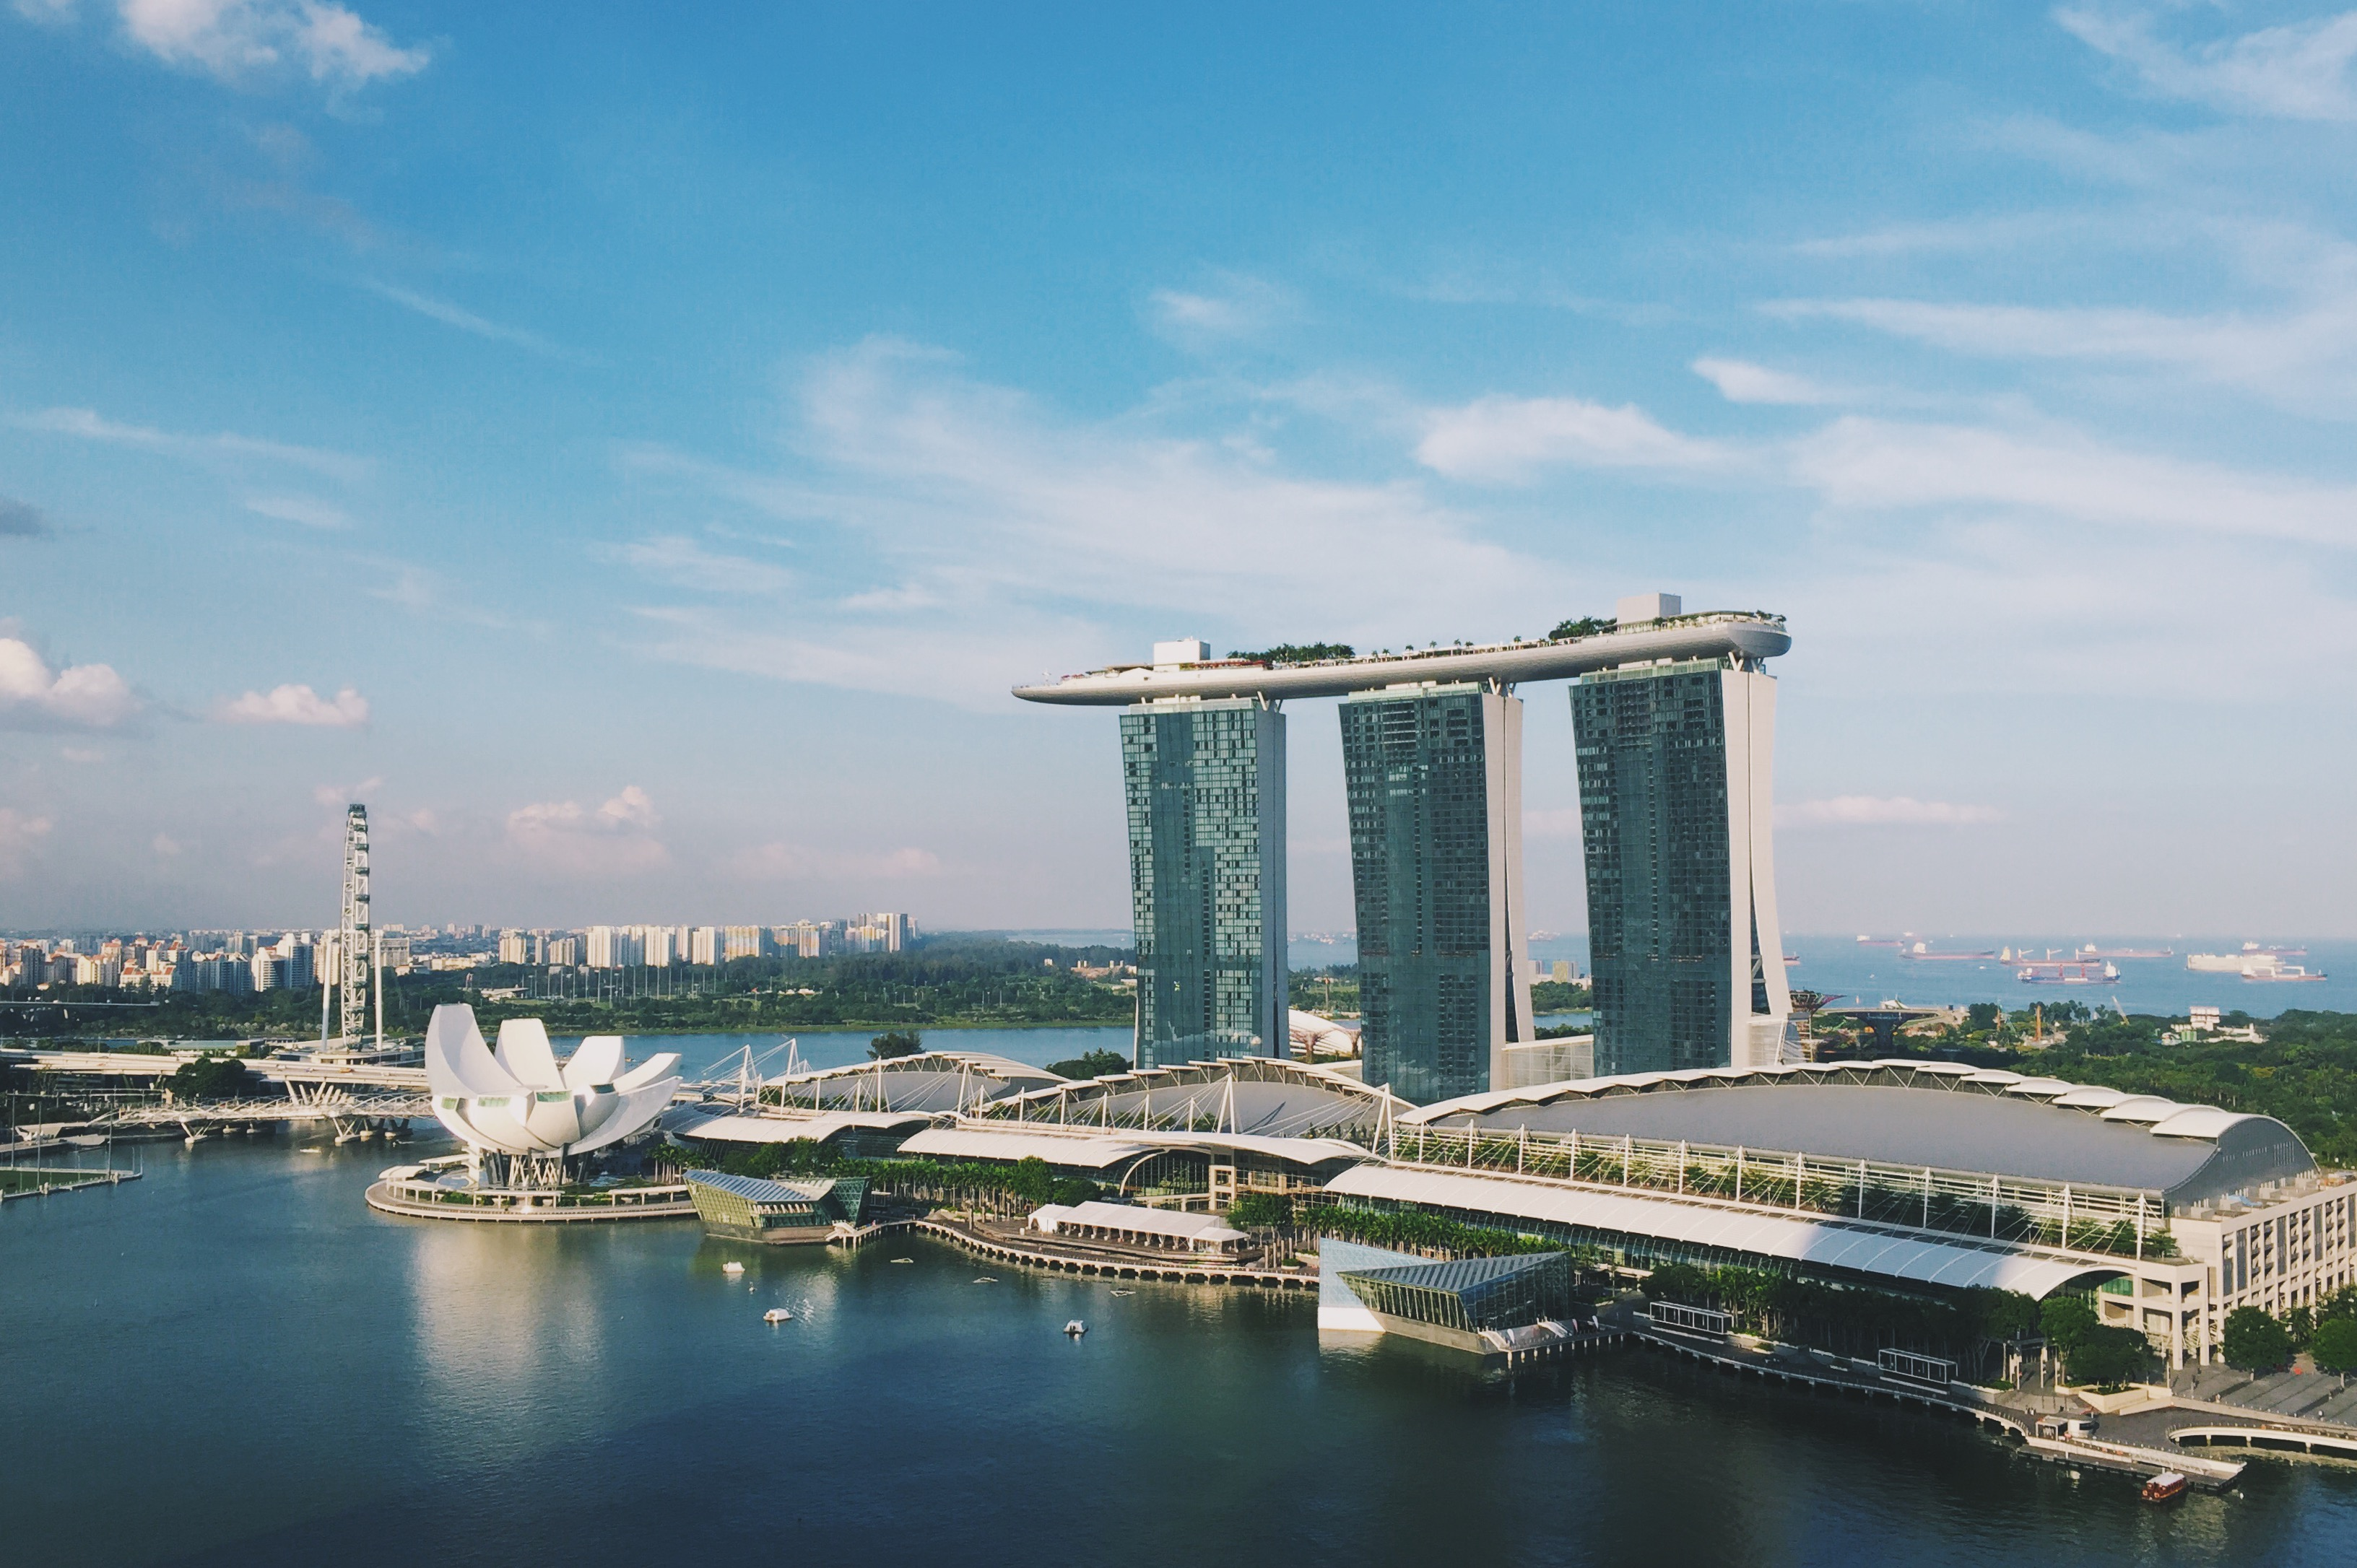 Singapore overtook the United States to top the Global Competitiveness Index 2019. Photo: Connected to India